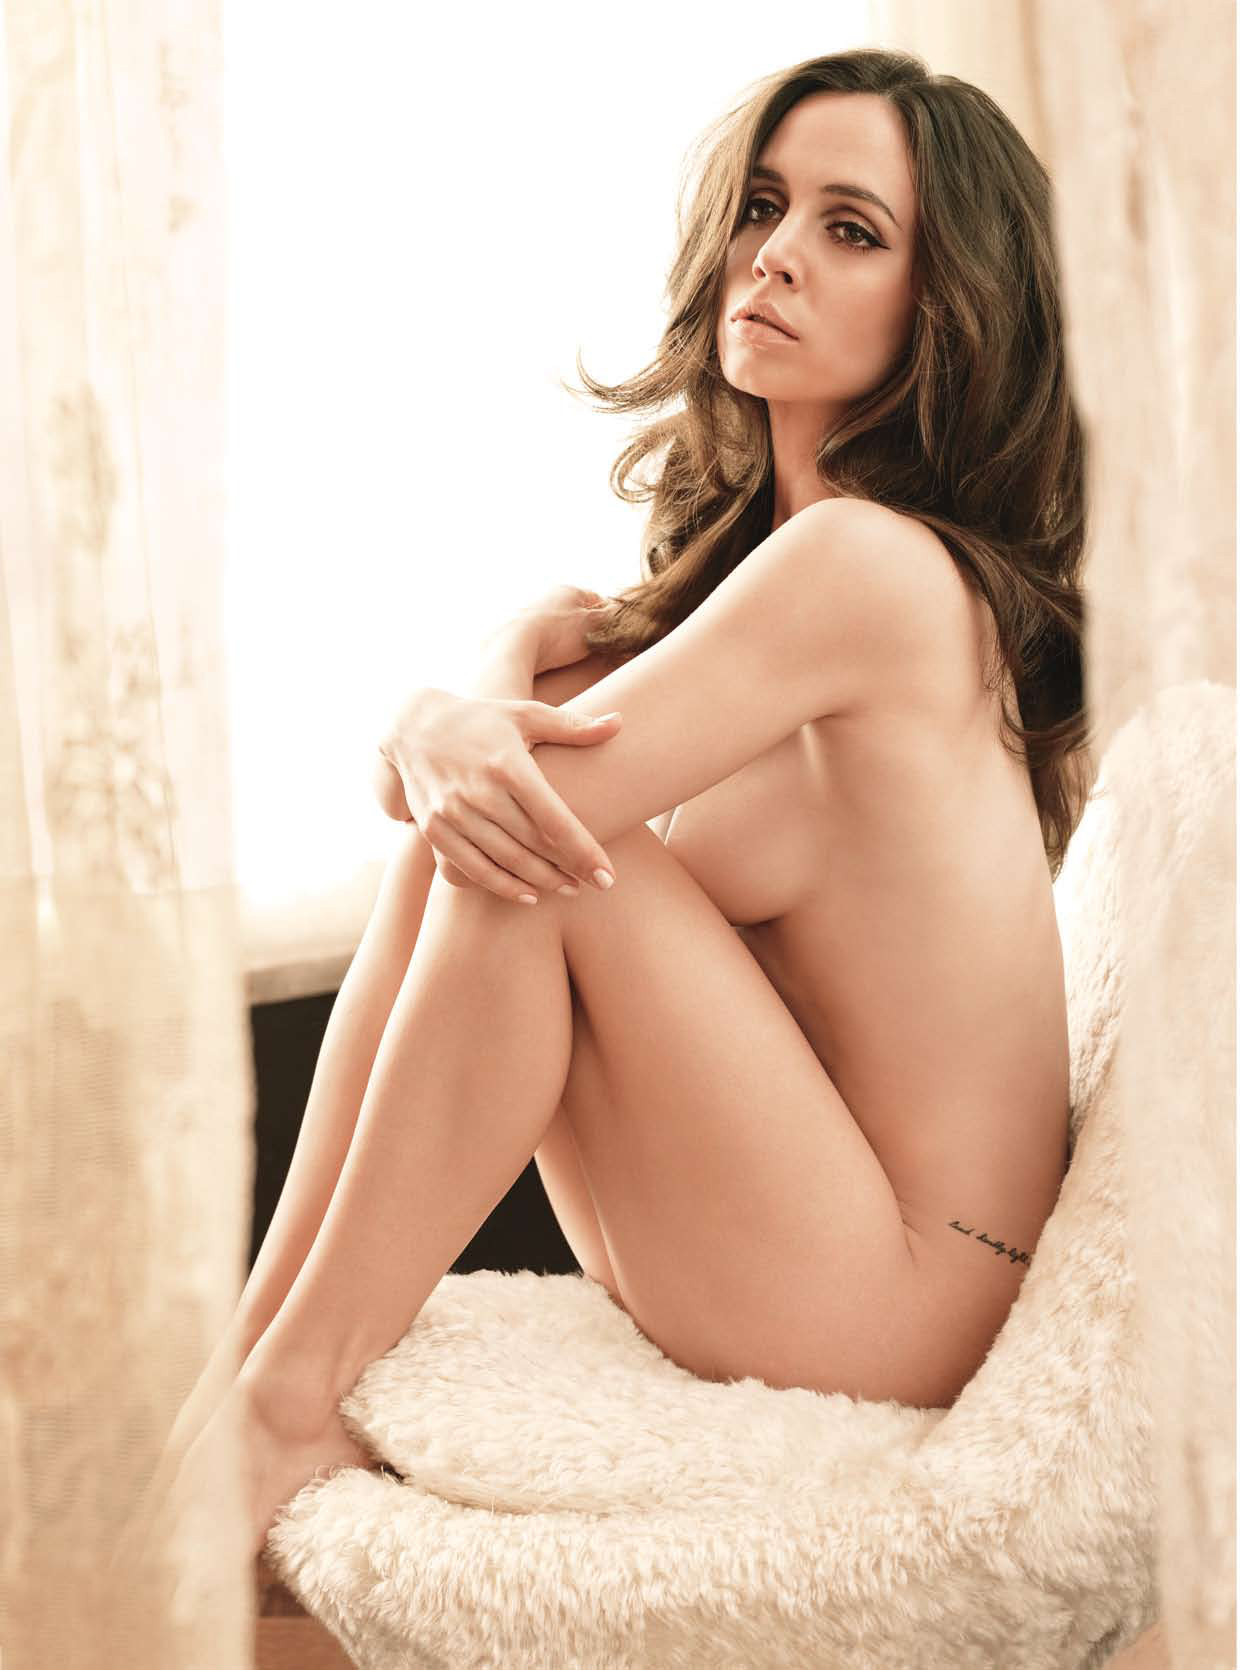 Allure May Eliza Dushku